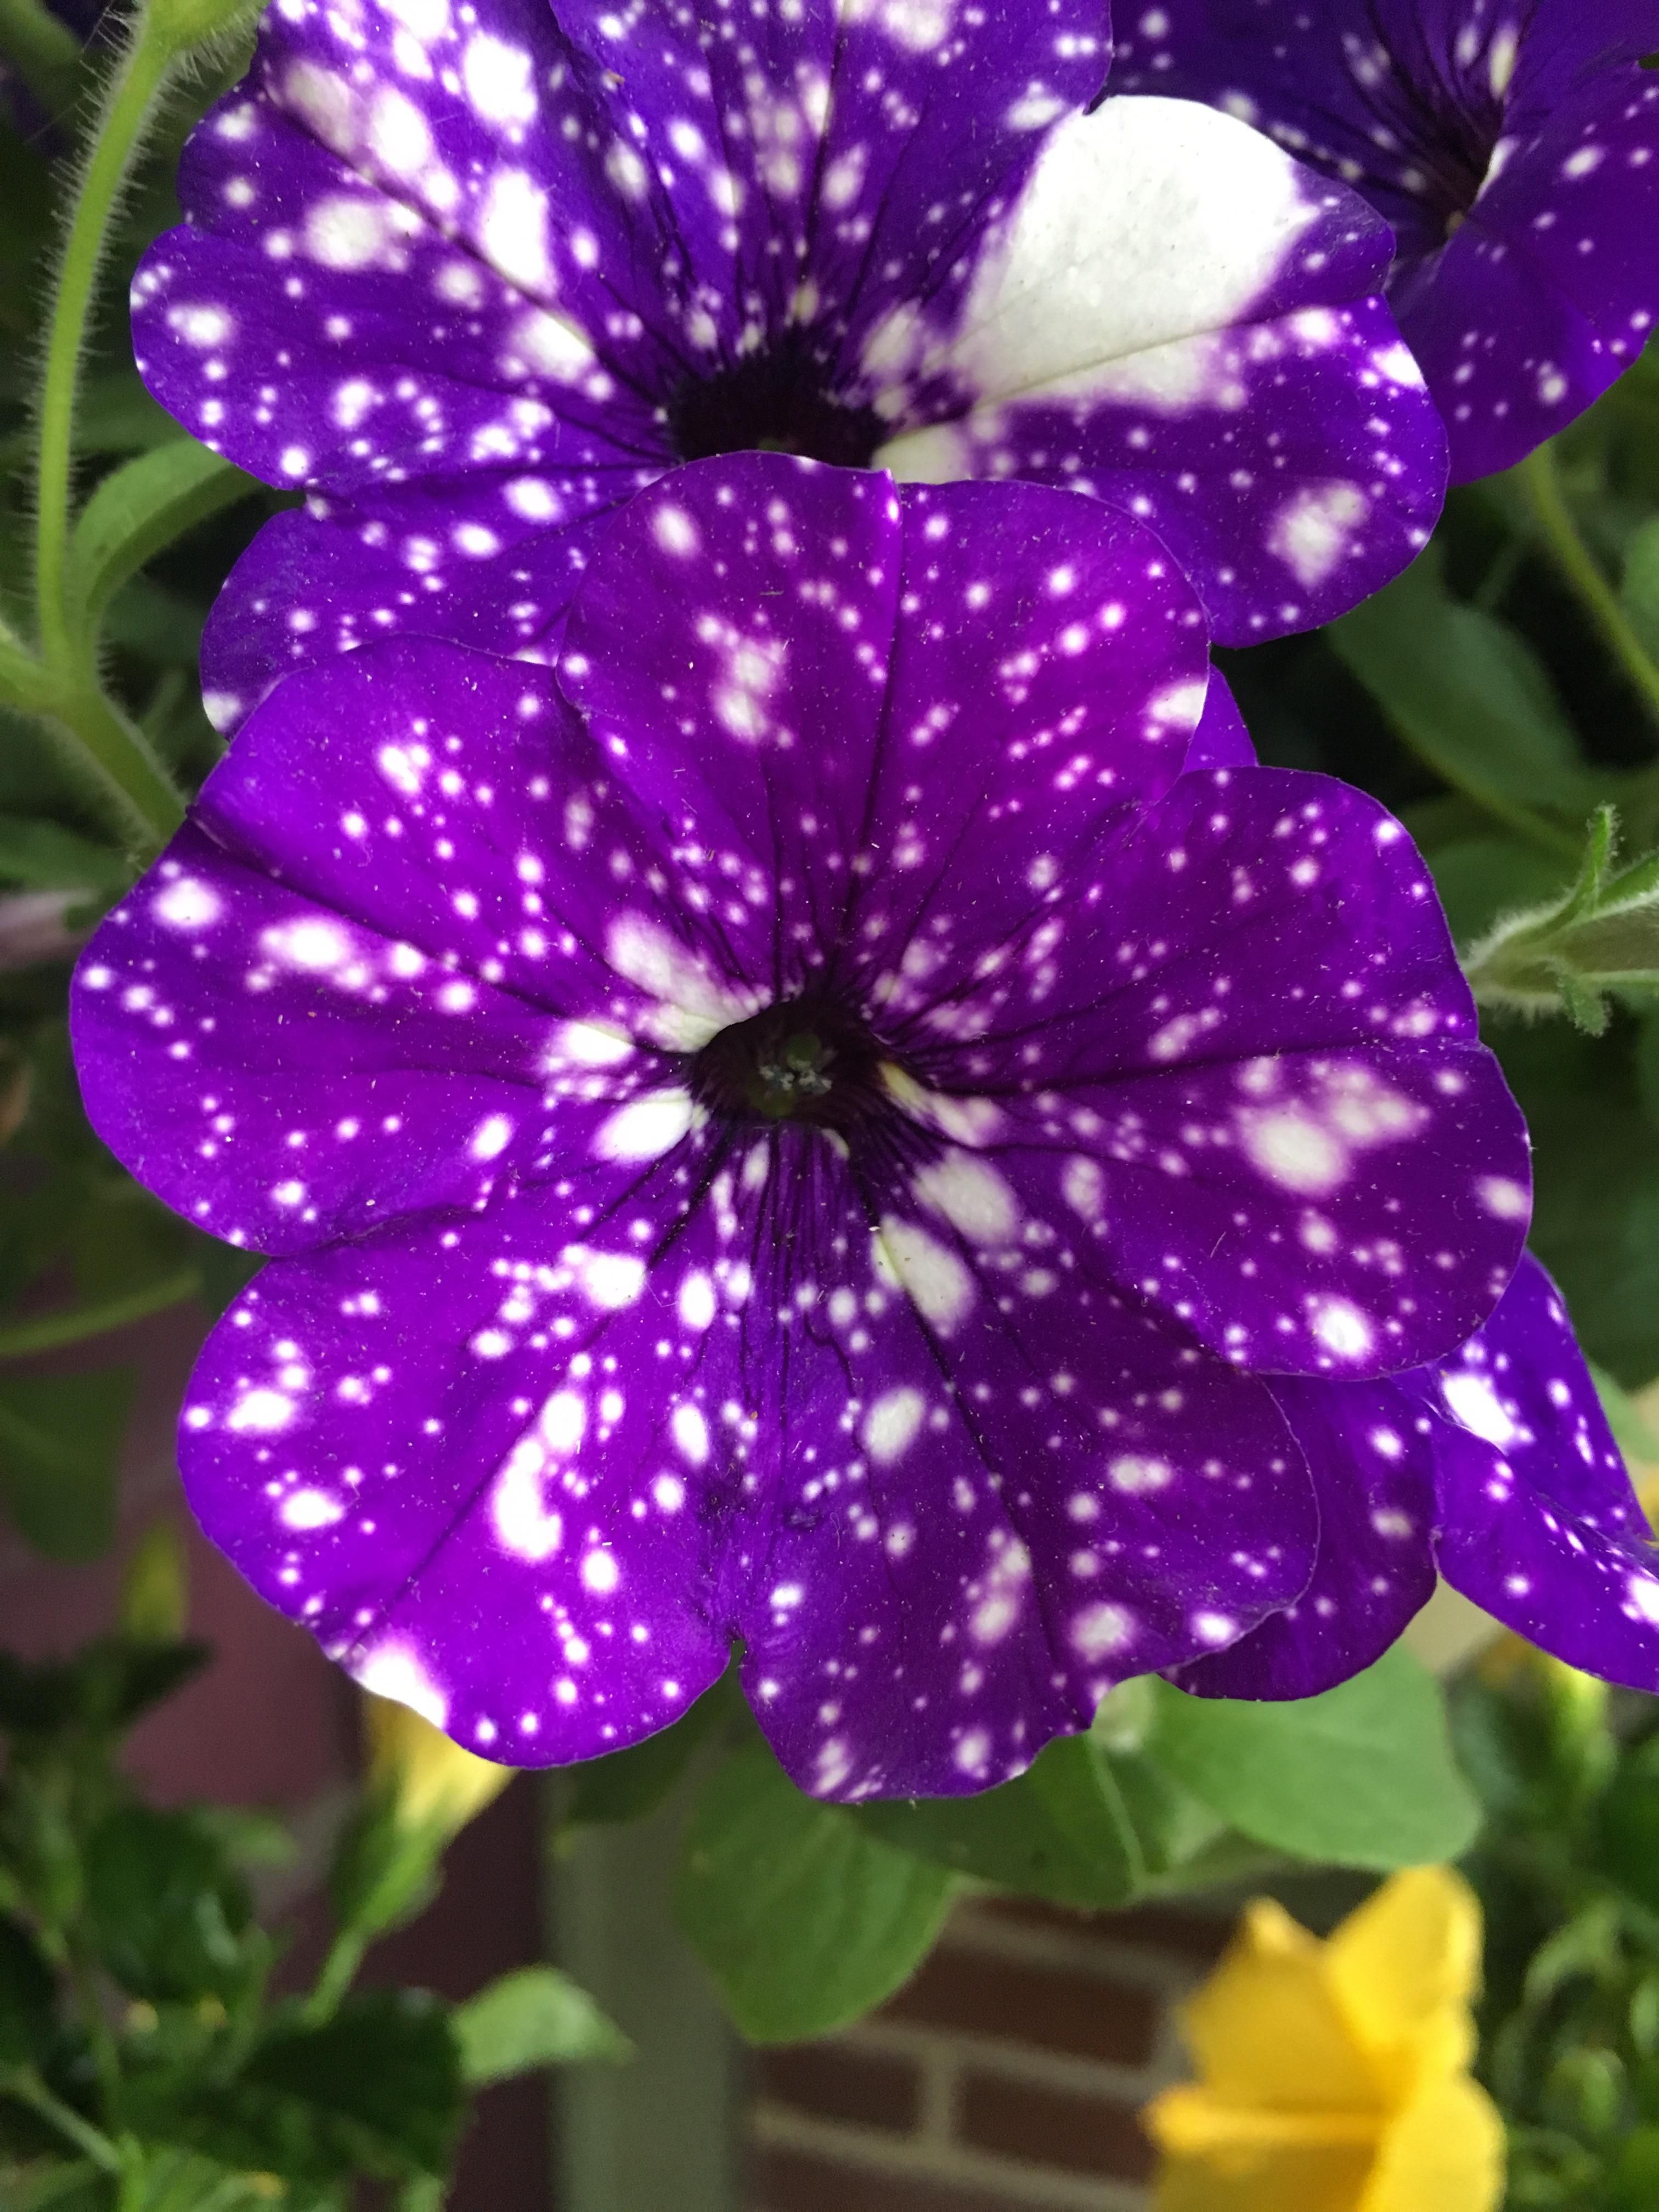 Night Sky Petunias Are Quite Popular On This Sub There S No Denying Why They Re Absolutely Gorgeous Gardening Garden Night Sky Petunia Petunias Flowers